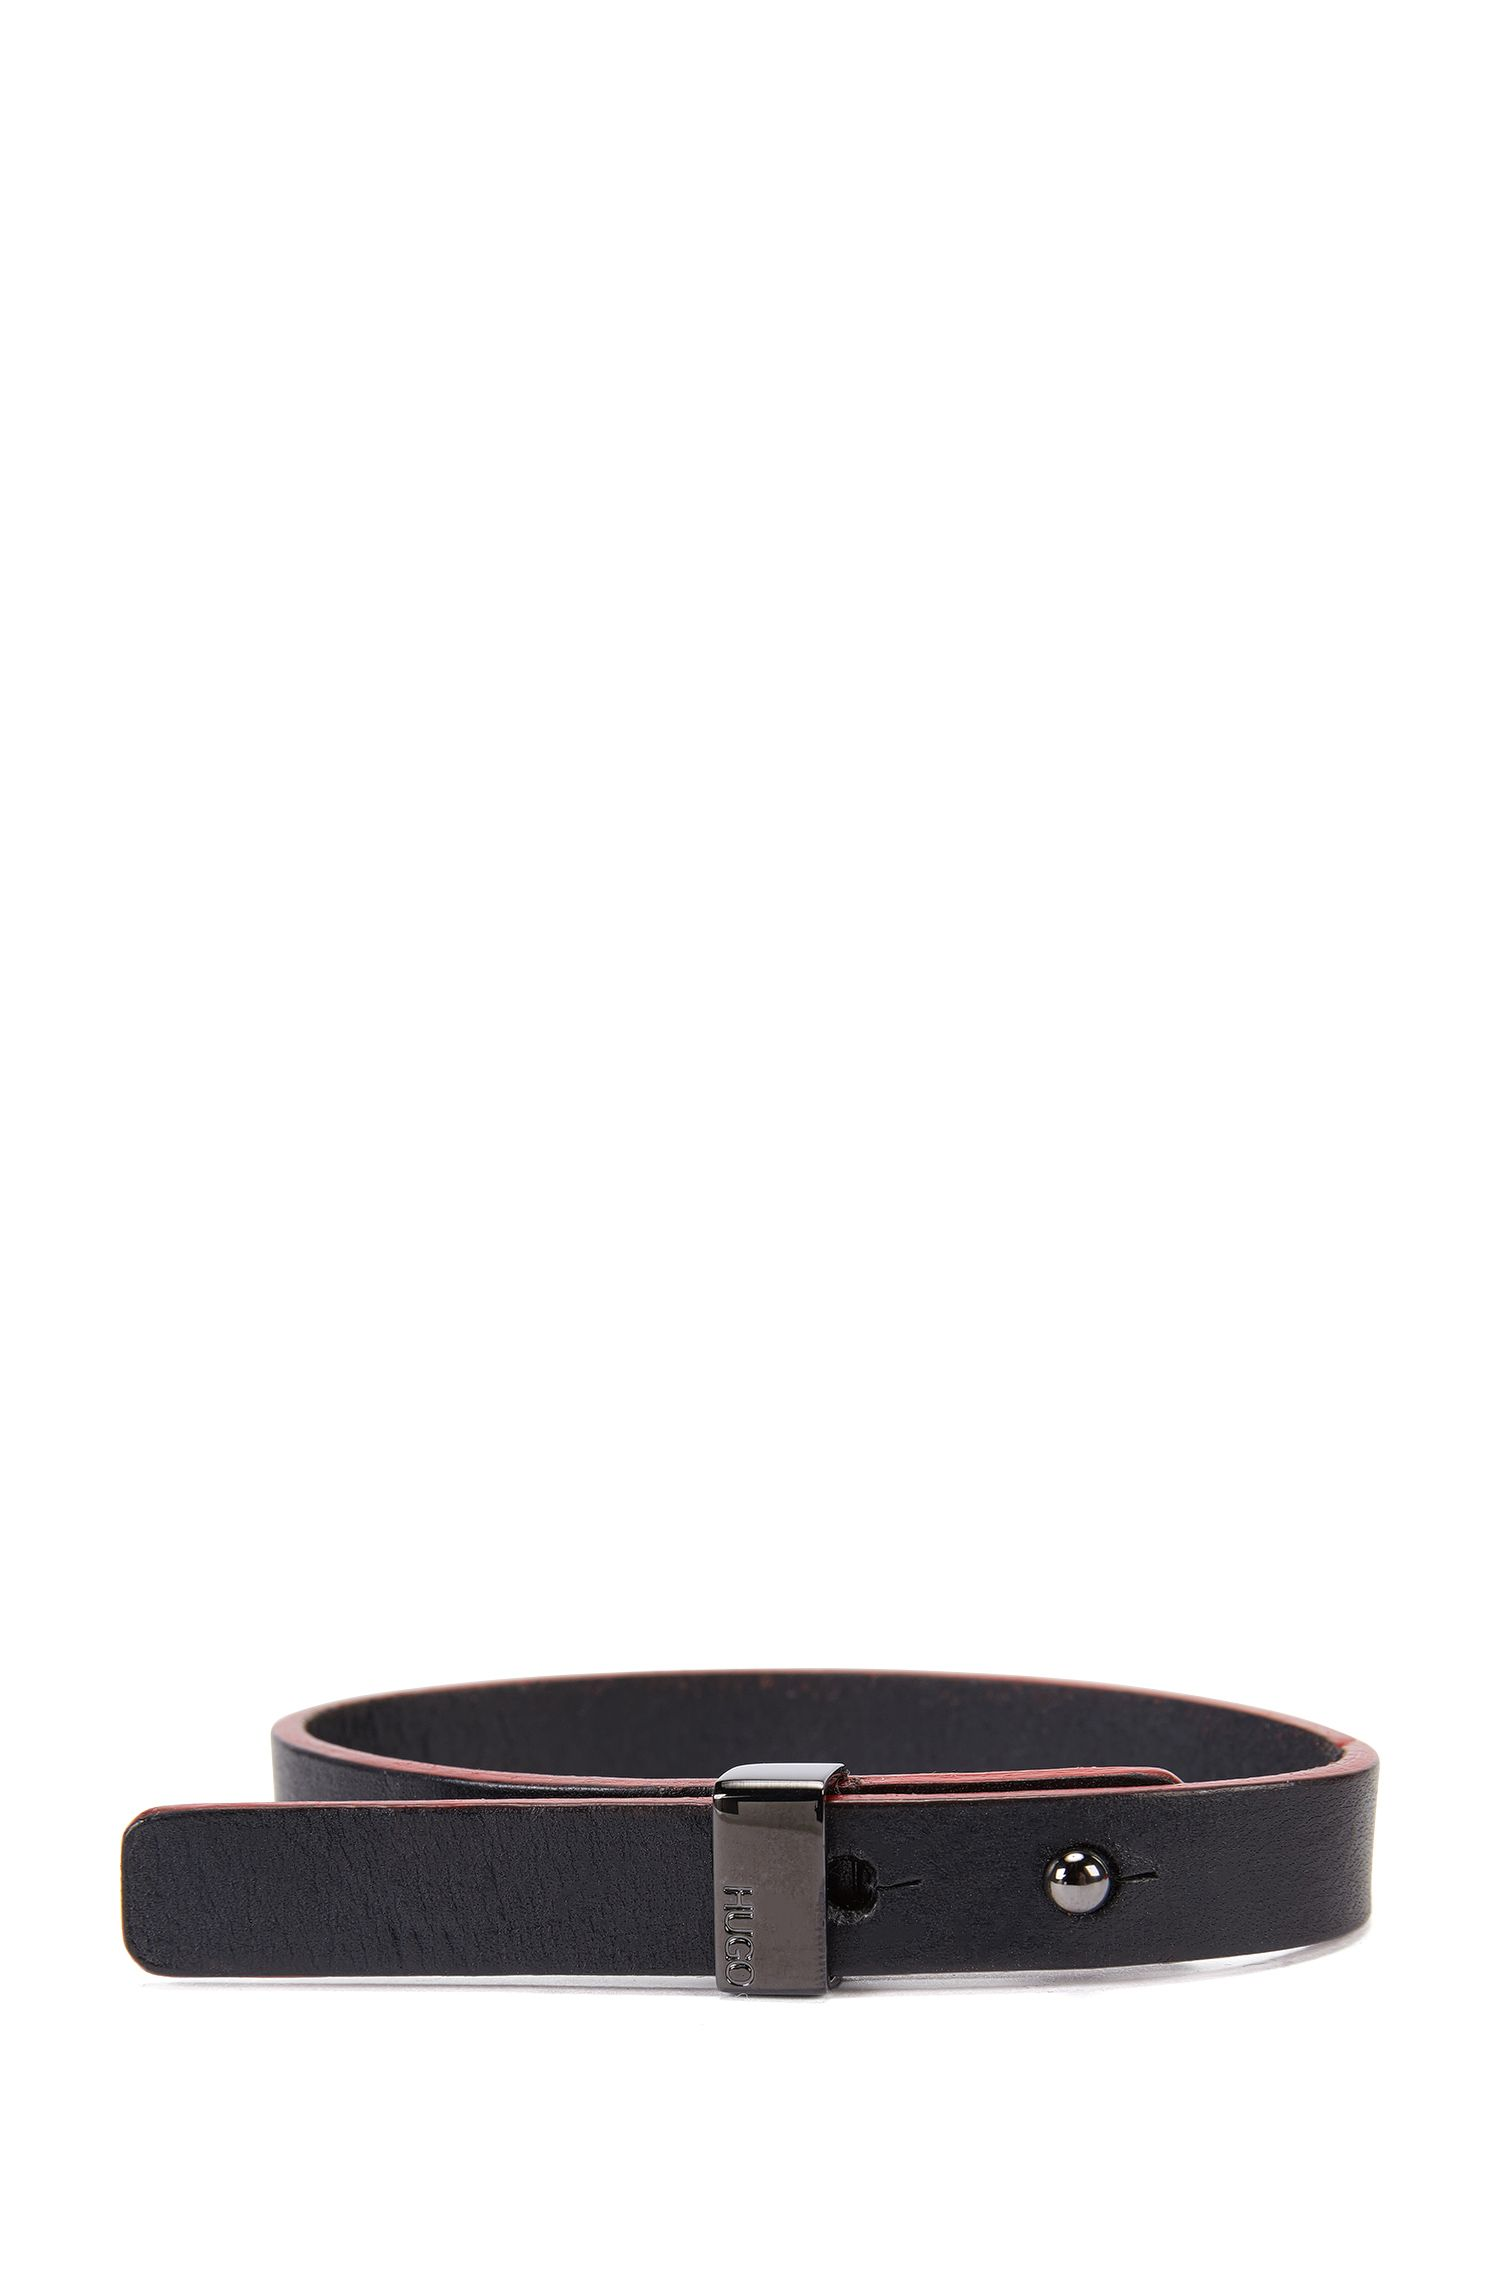 Leather bracelet with engraved pin closure